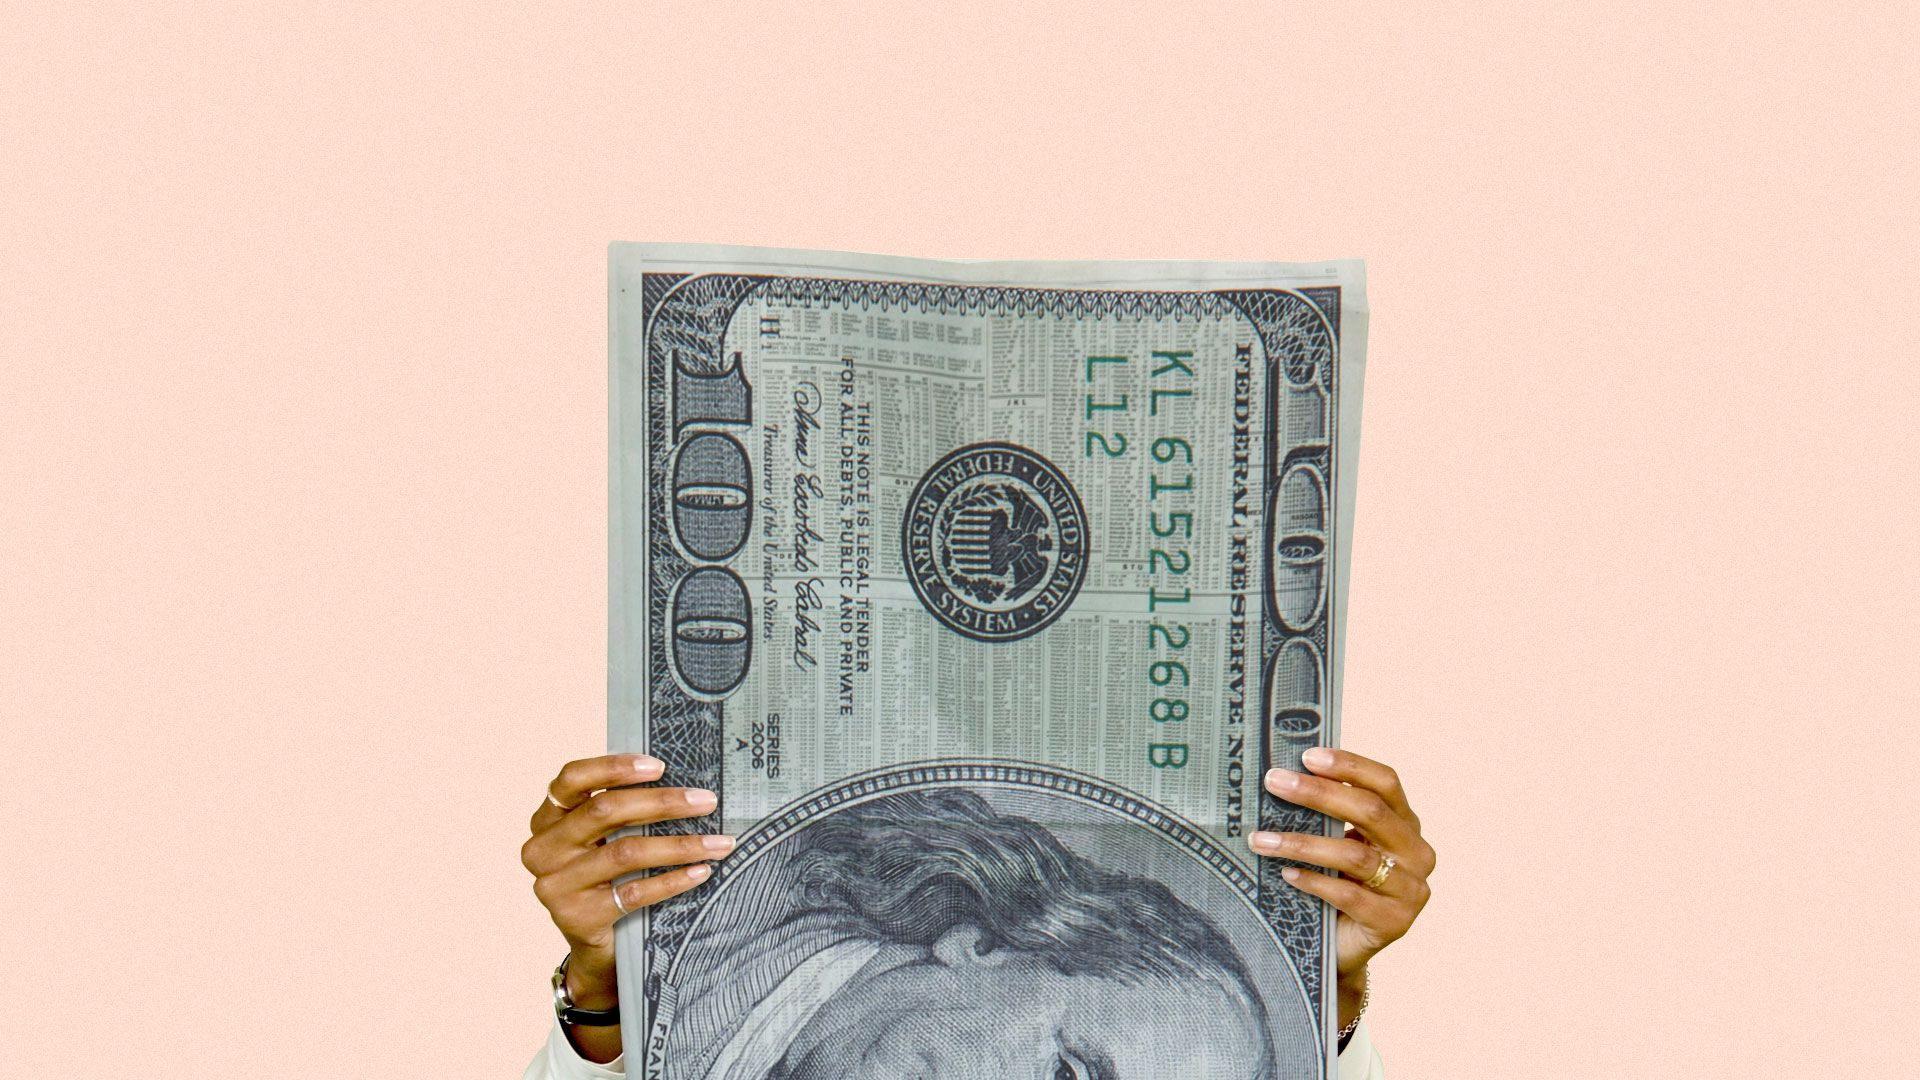 Illustration of a person holding money